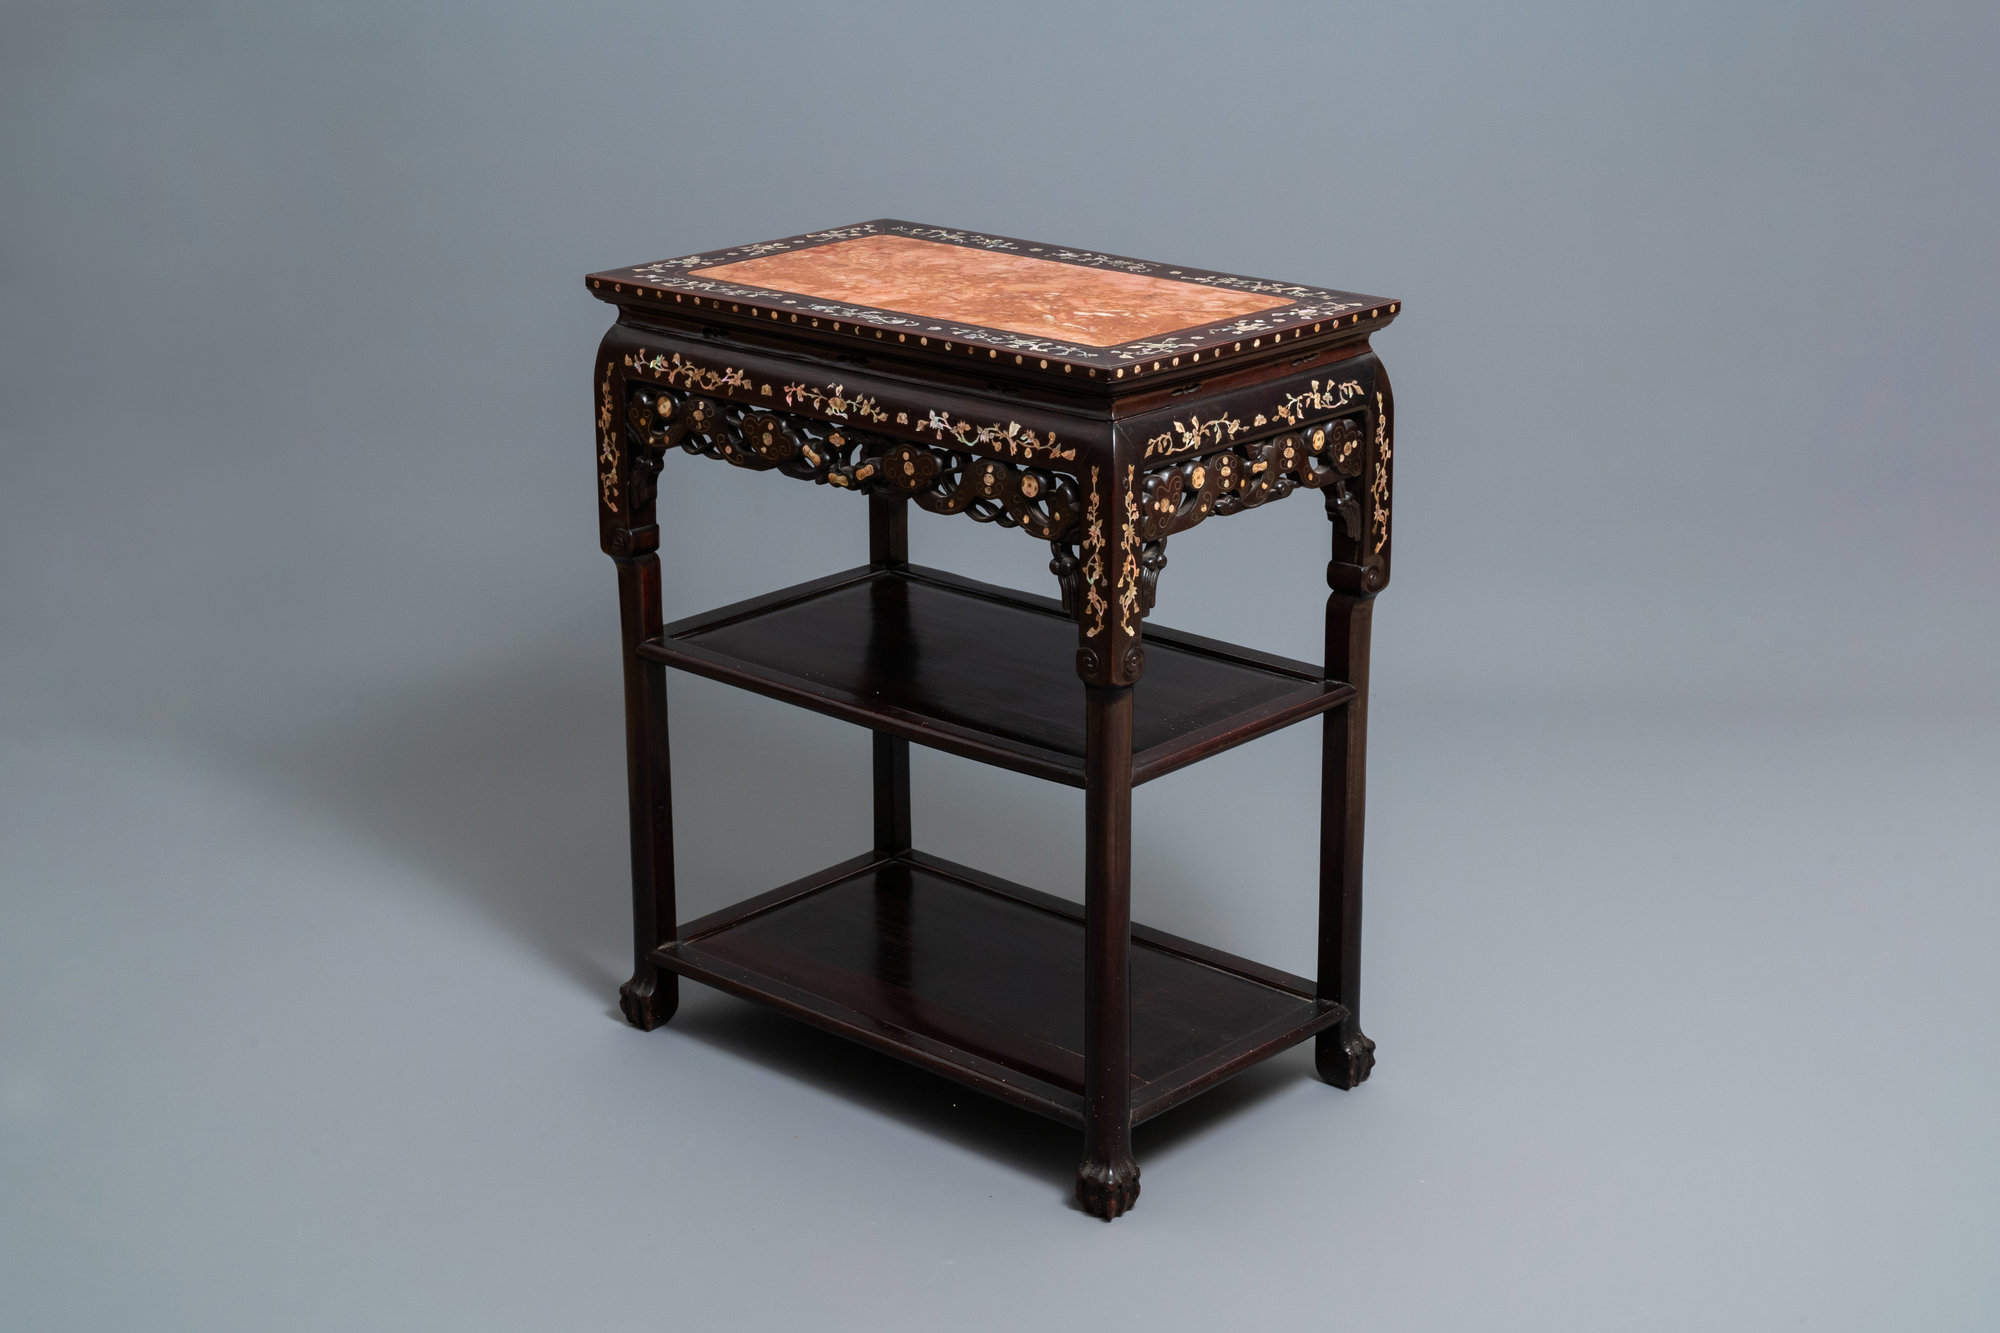 A Chinese mother-of-pearl-inlaid wooden sideboard with marble top, 19th C.